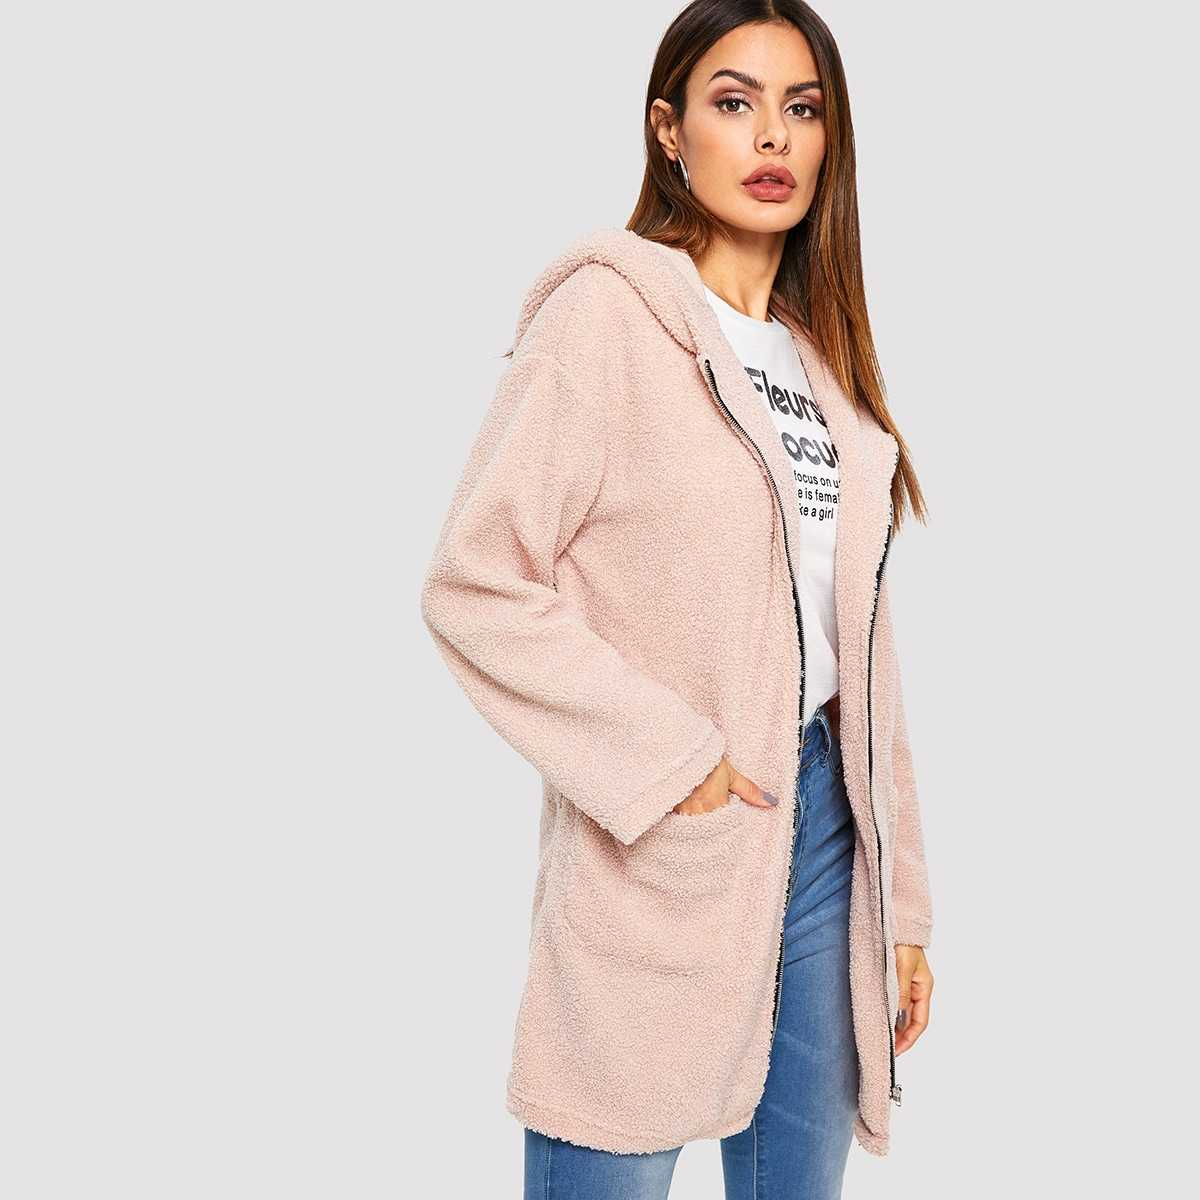 Pocket Front Zip Up Hooded Teddy Coat in Pink by ROMWE on GOOFASH